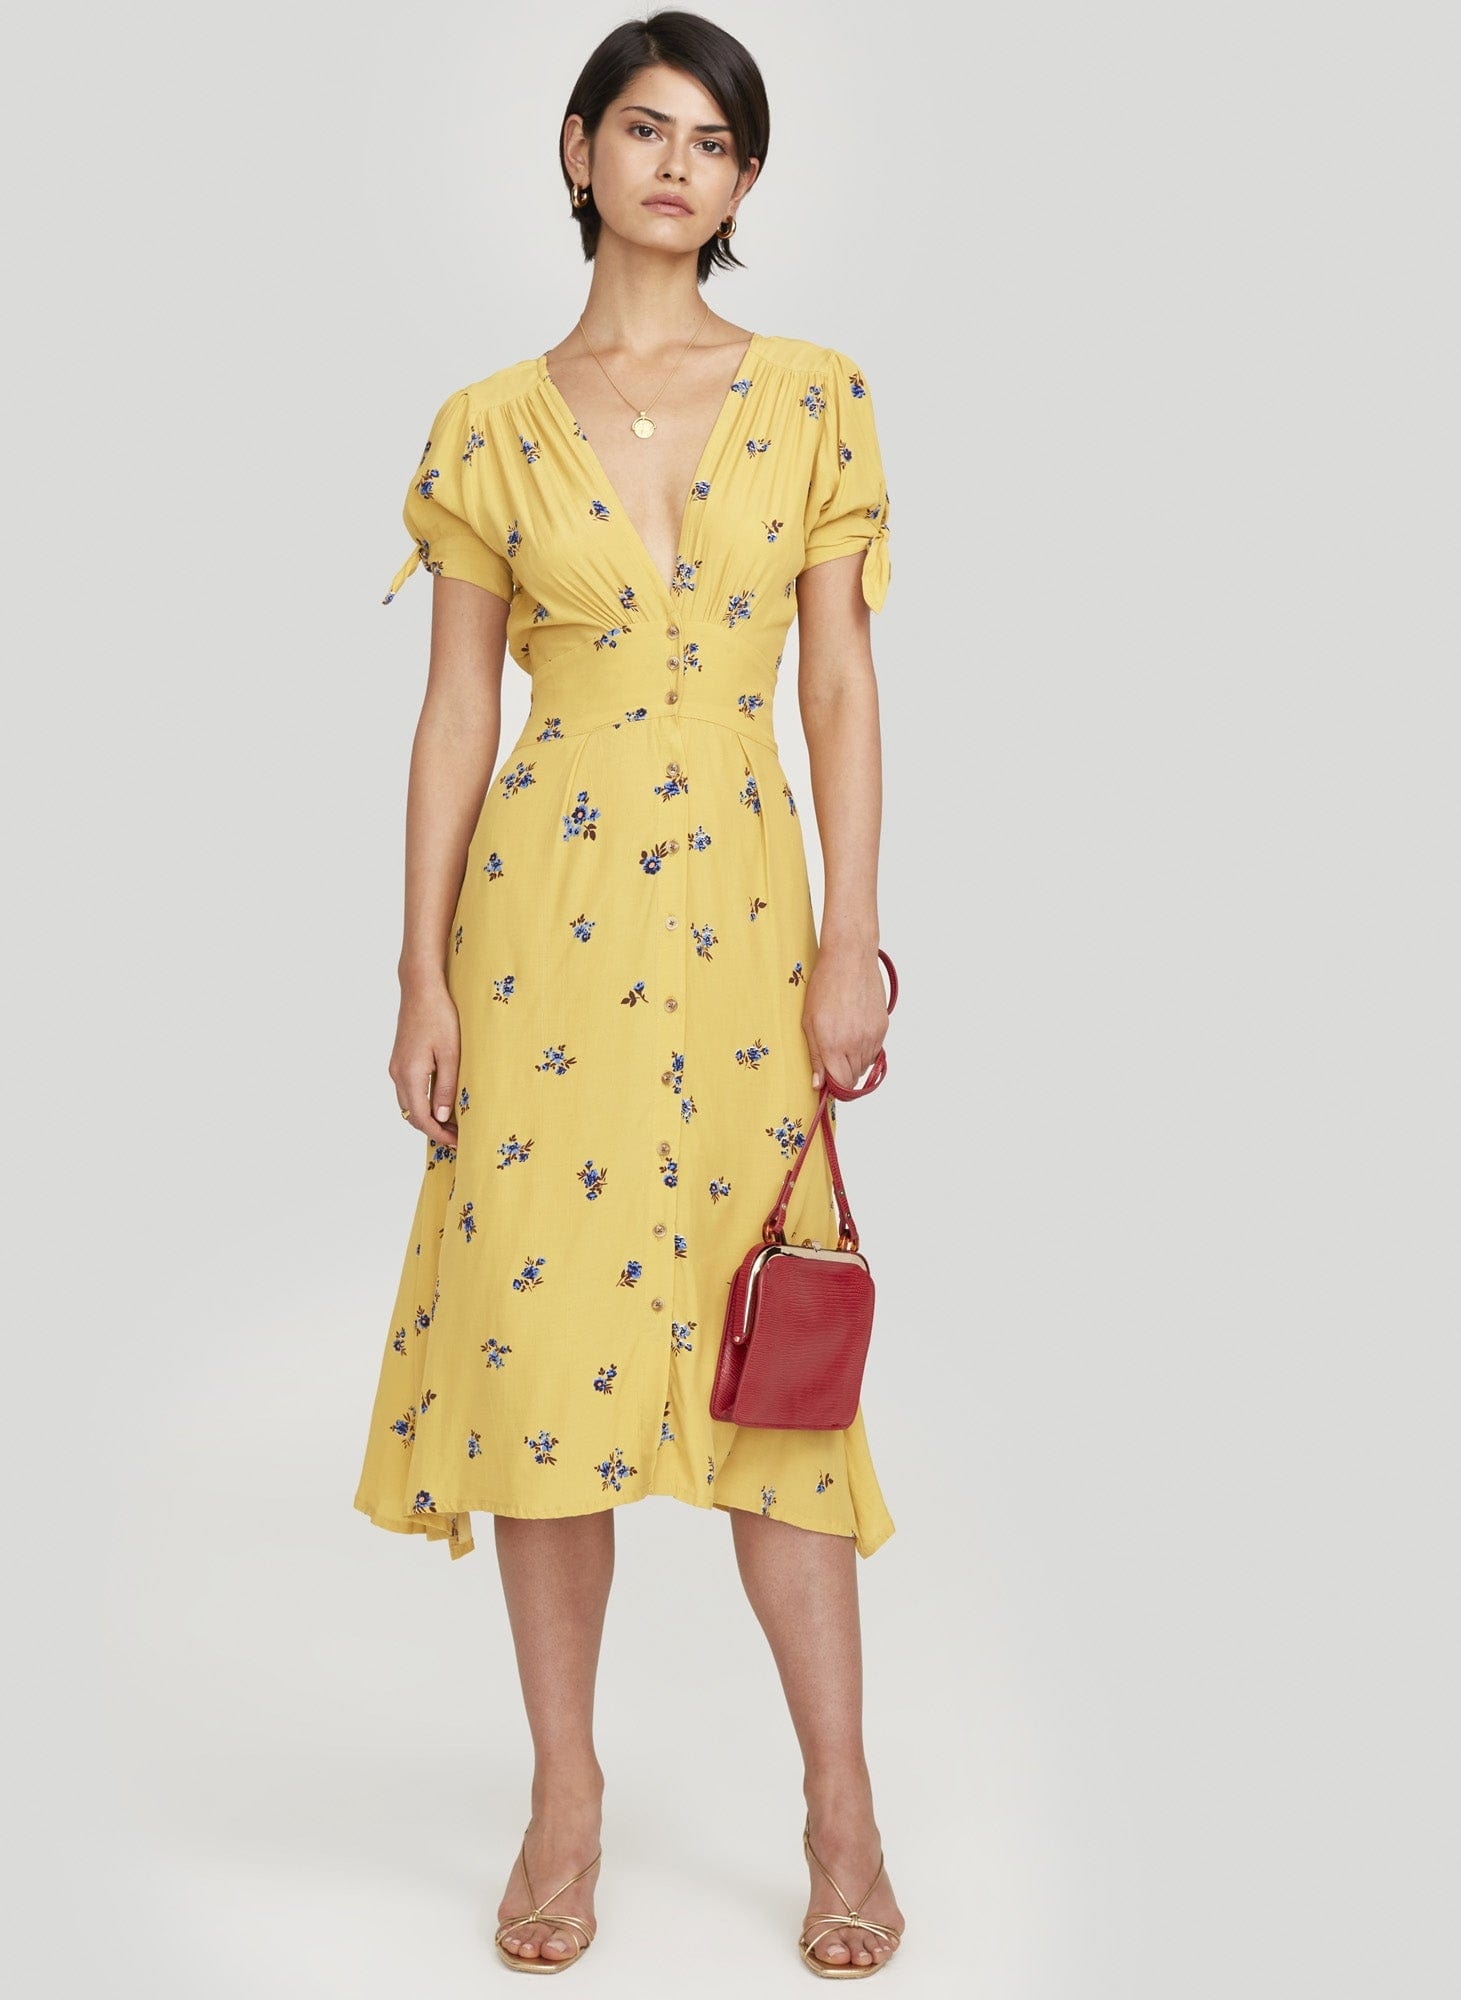 Dolores Floral Print - Yellow - Billie Midi Dress - Final Sale